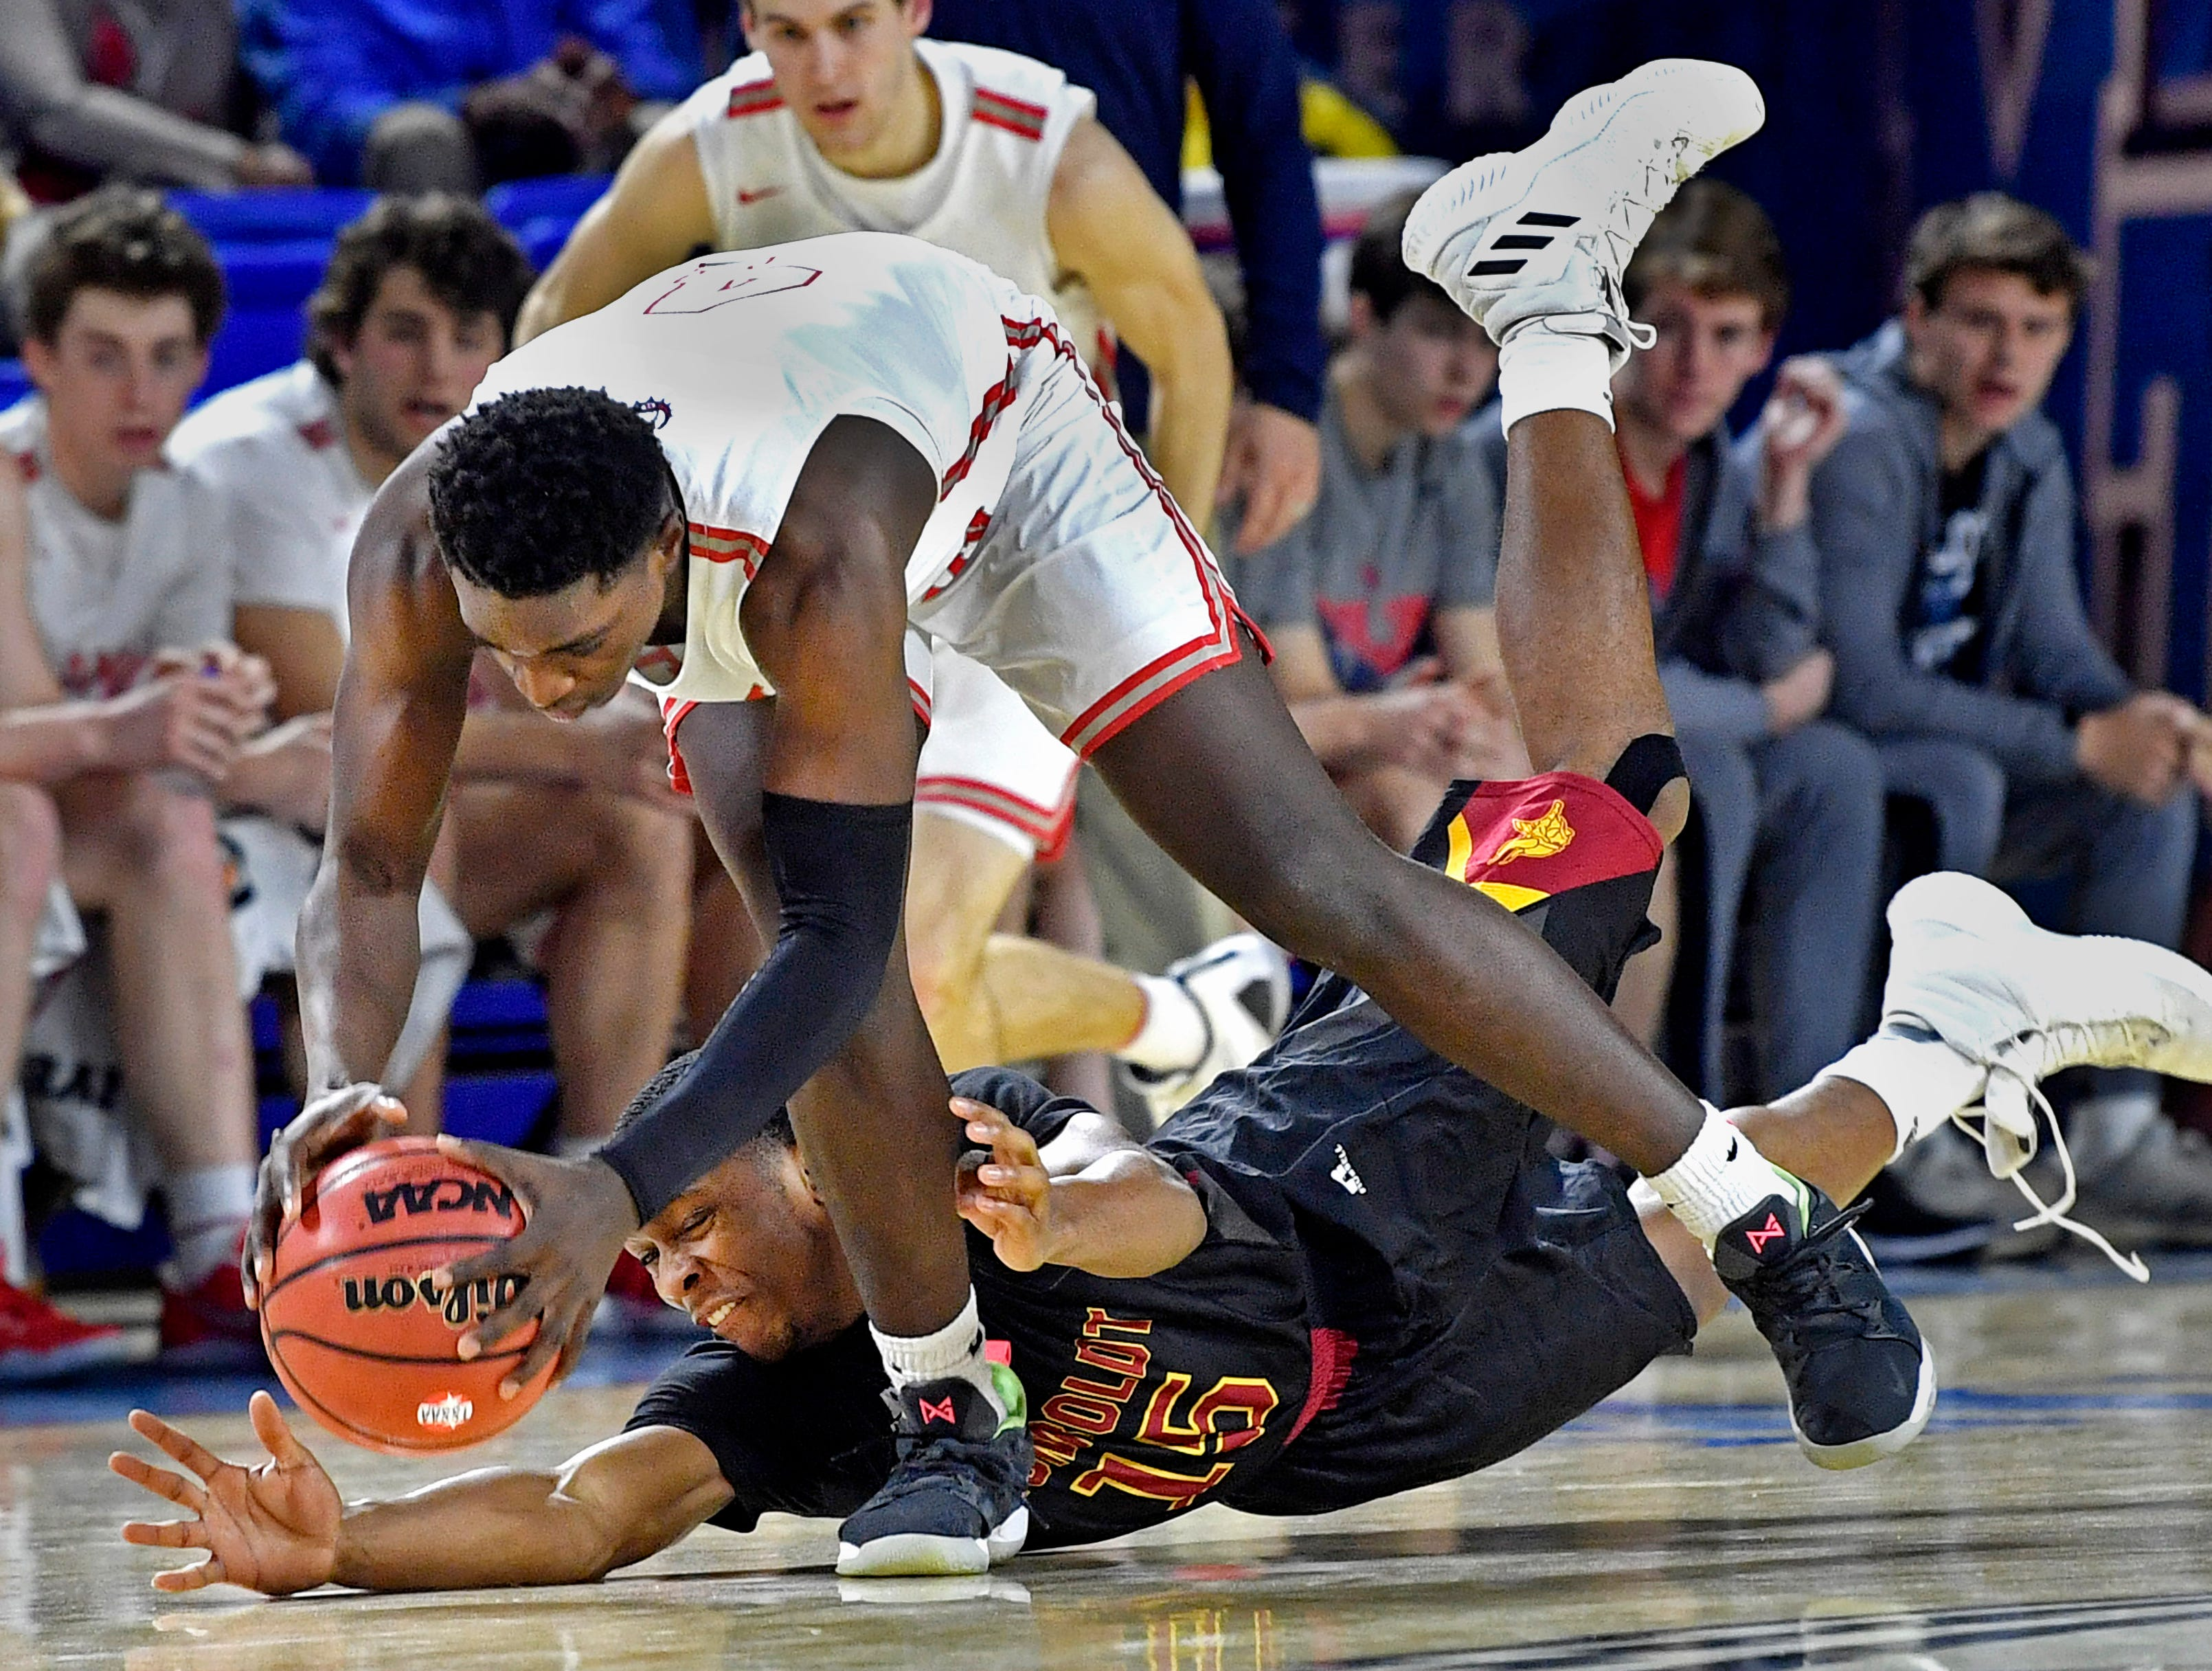 Columbia Academy Sky Polk (4) and Humboldt's Malik Cox (15) both go for a loose ball as Columbia Academy plays Humboldt for the TSSAA Class A Championship  Saturday, March 16, 2019, in Murfreesboro, Tenn.